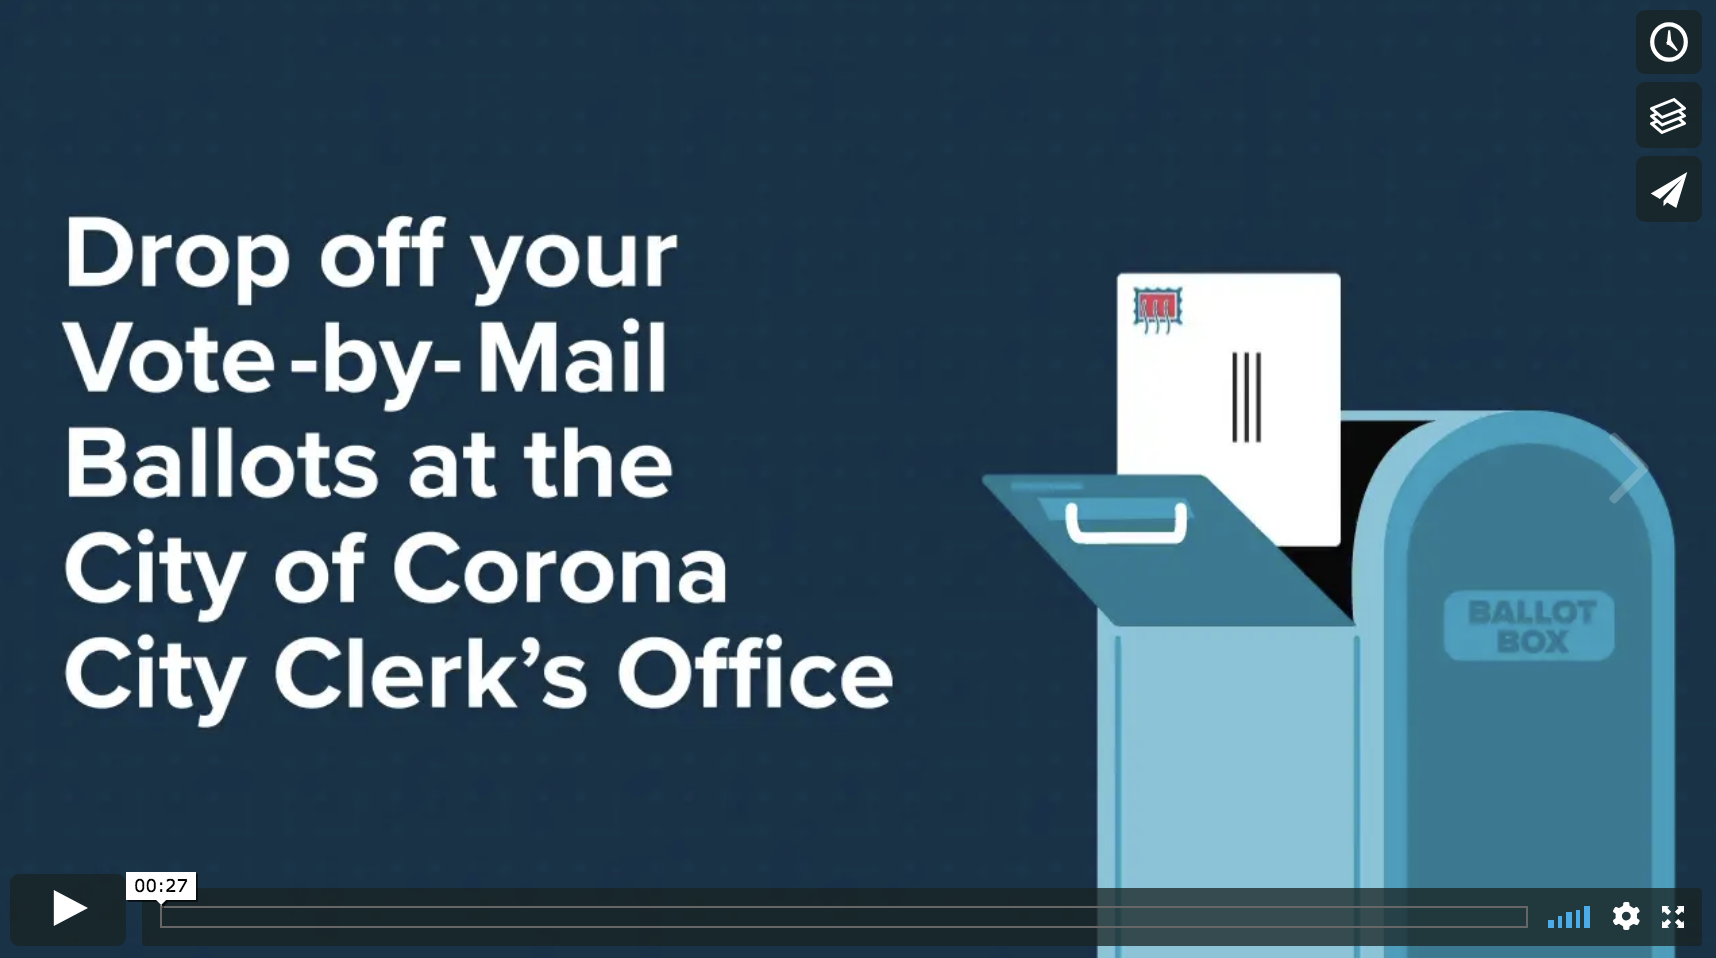 Drop off your Vote-by-Mail Ballots